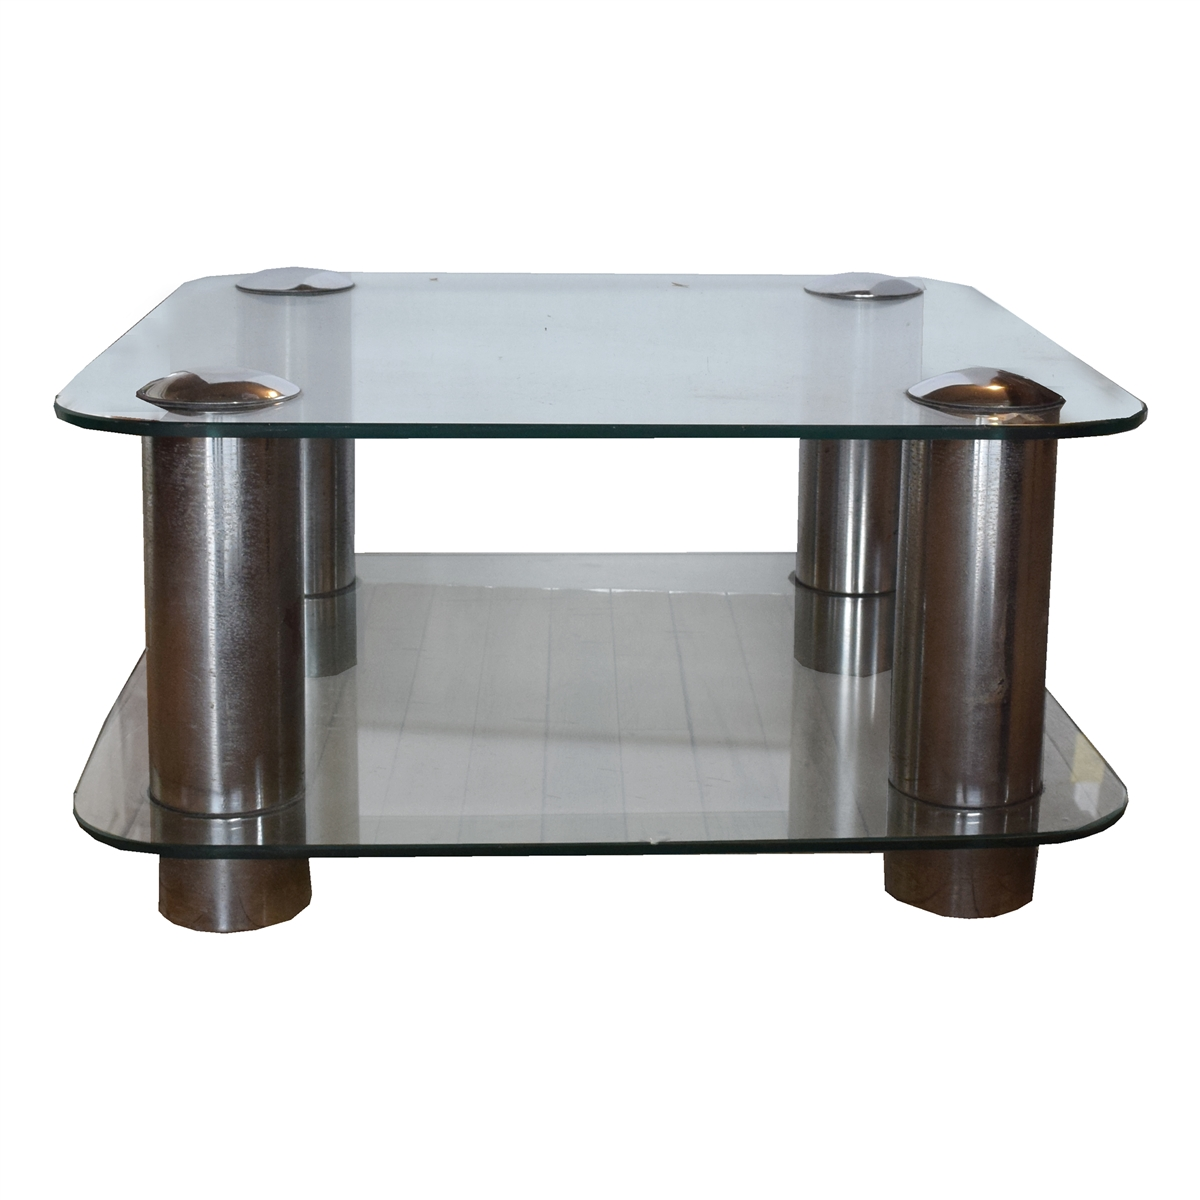 Cool Mid Century Modern American Glass Coffee Table Home Interior And Landscaping Oversignezvosmurscom